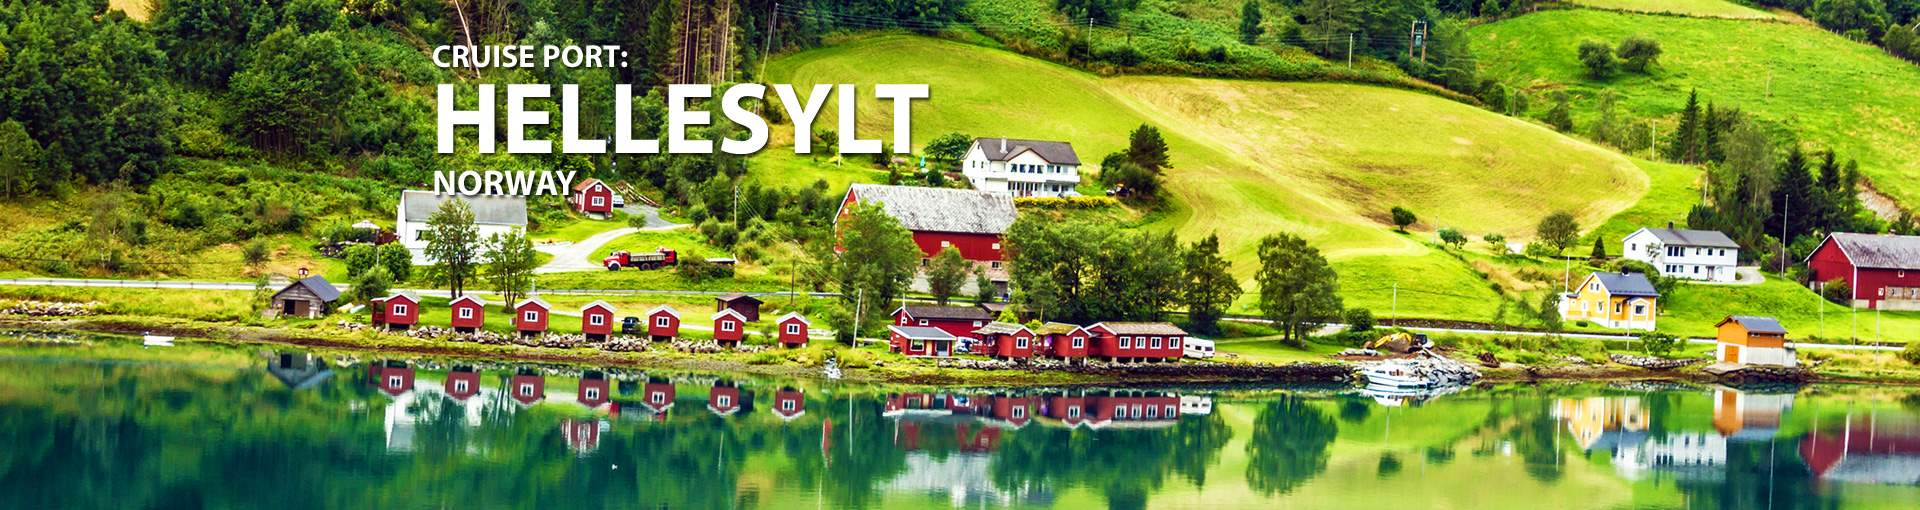 Cruises to Hellesylt, Norway